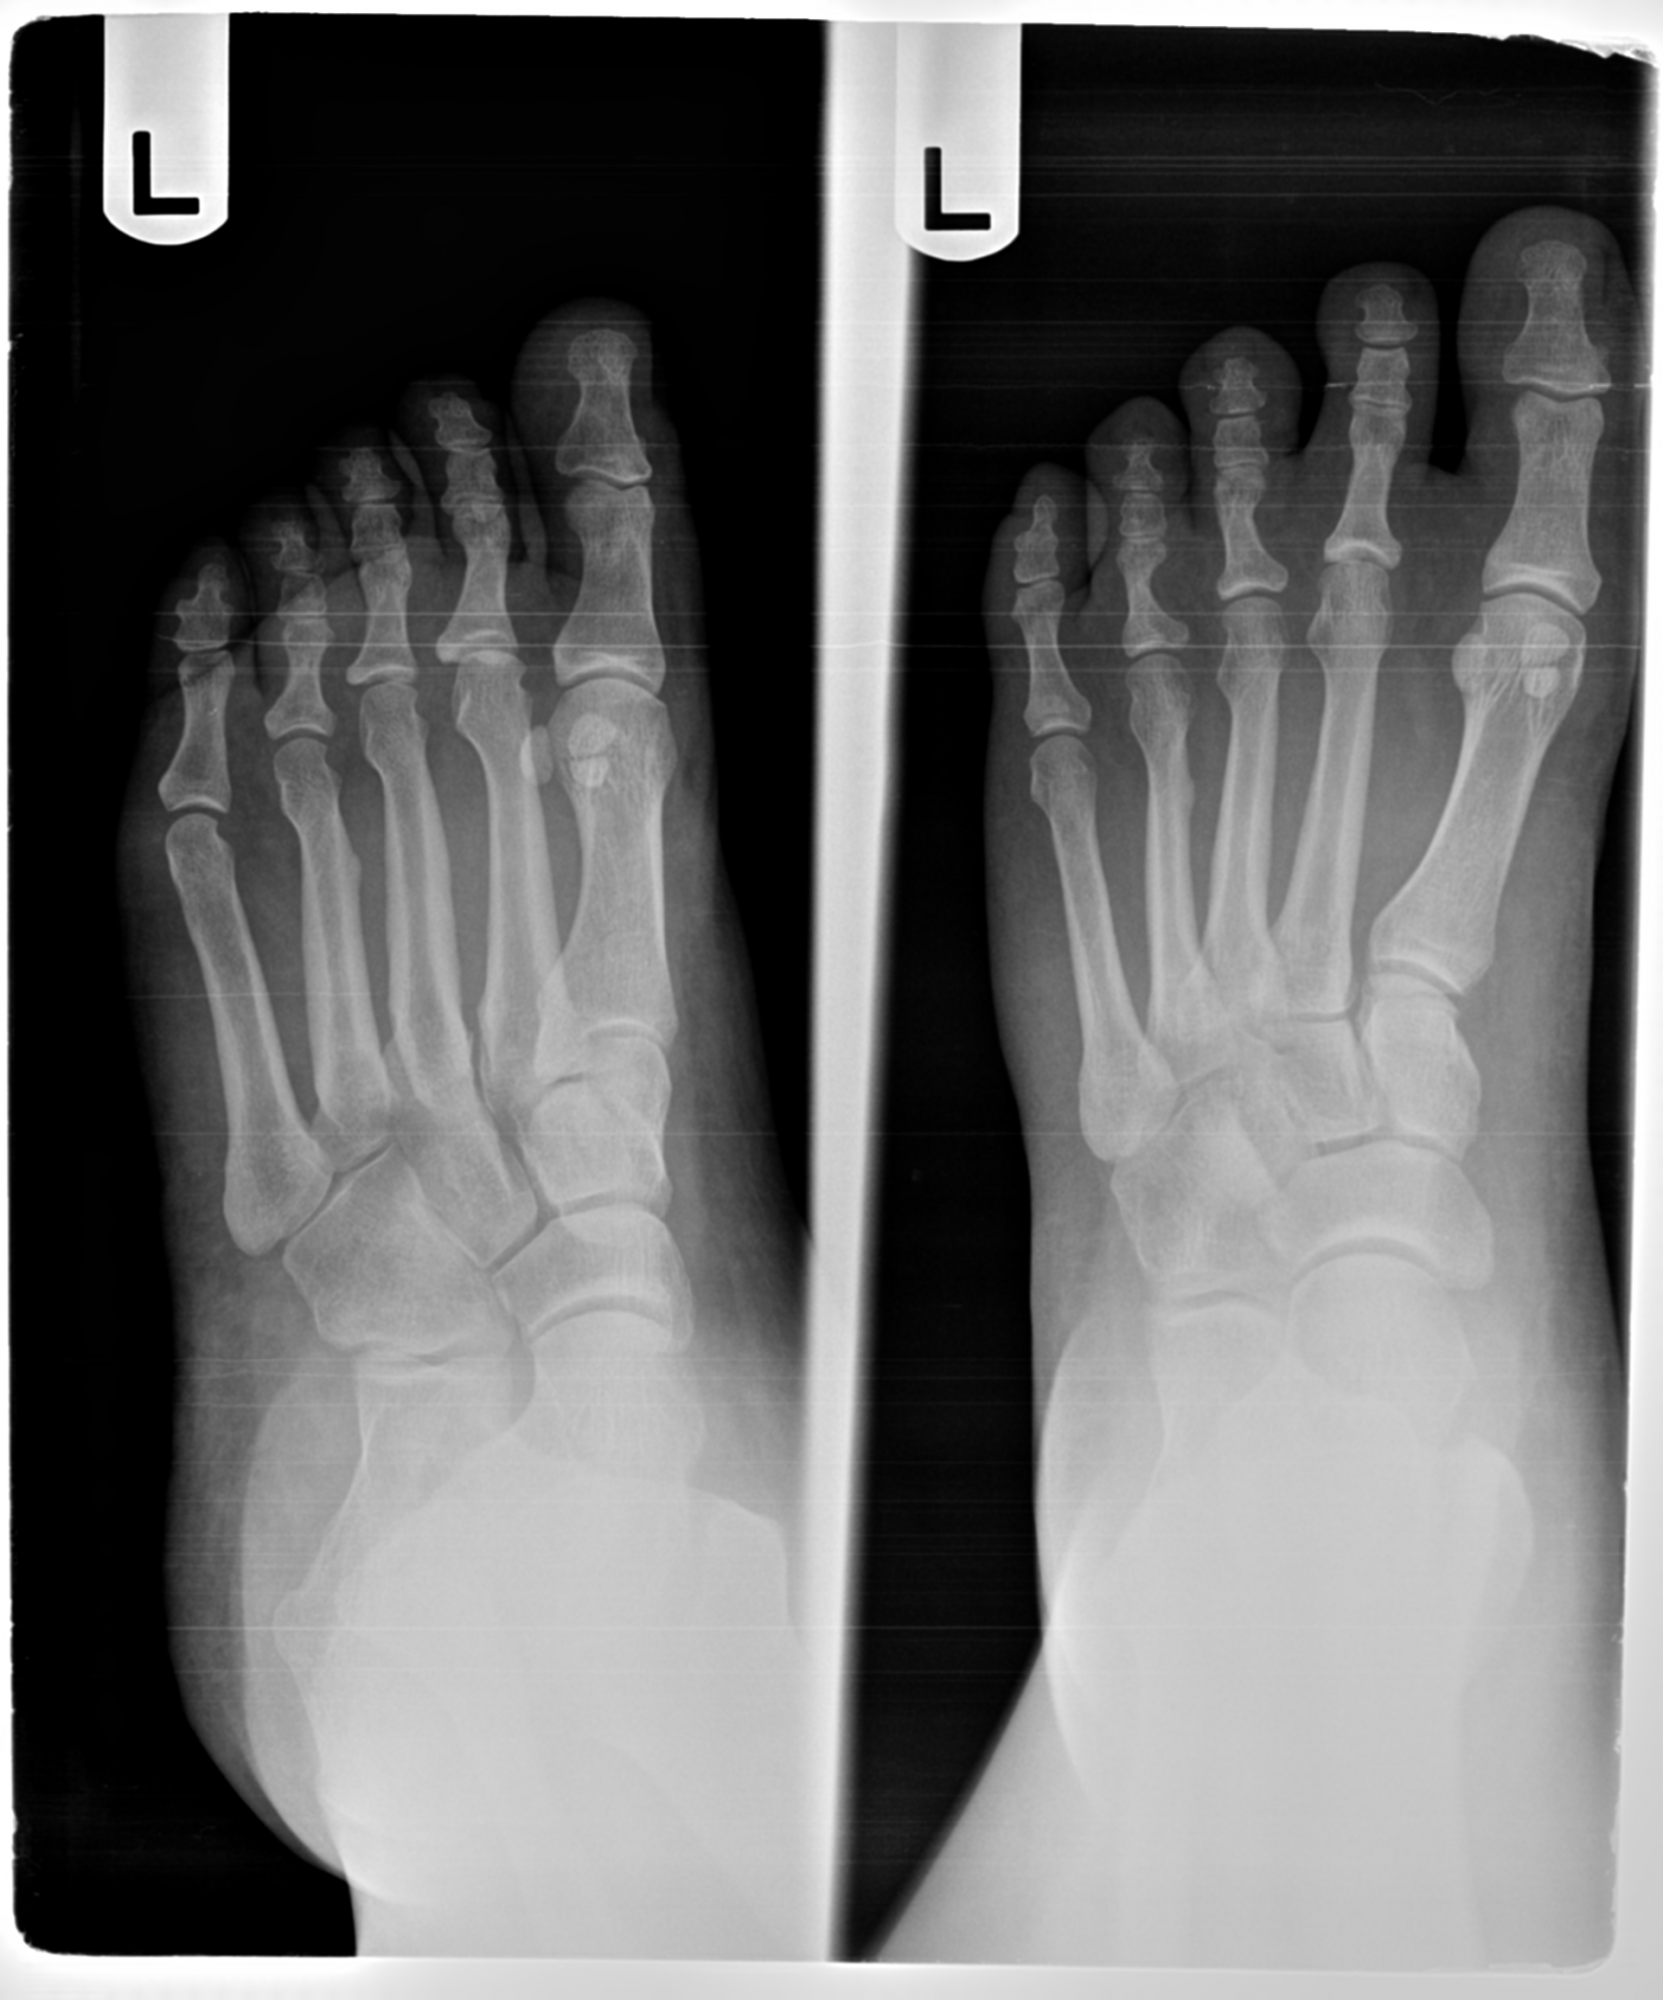 How to Identify a Stress Fracture